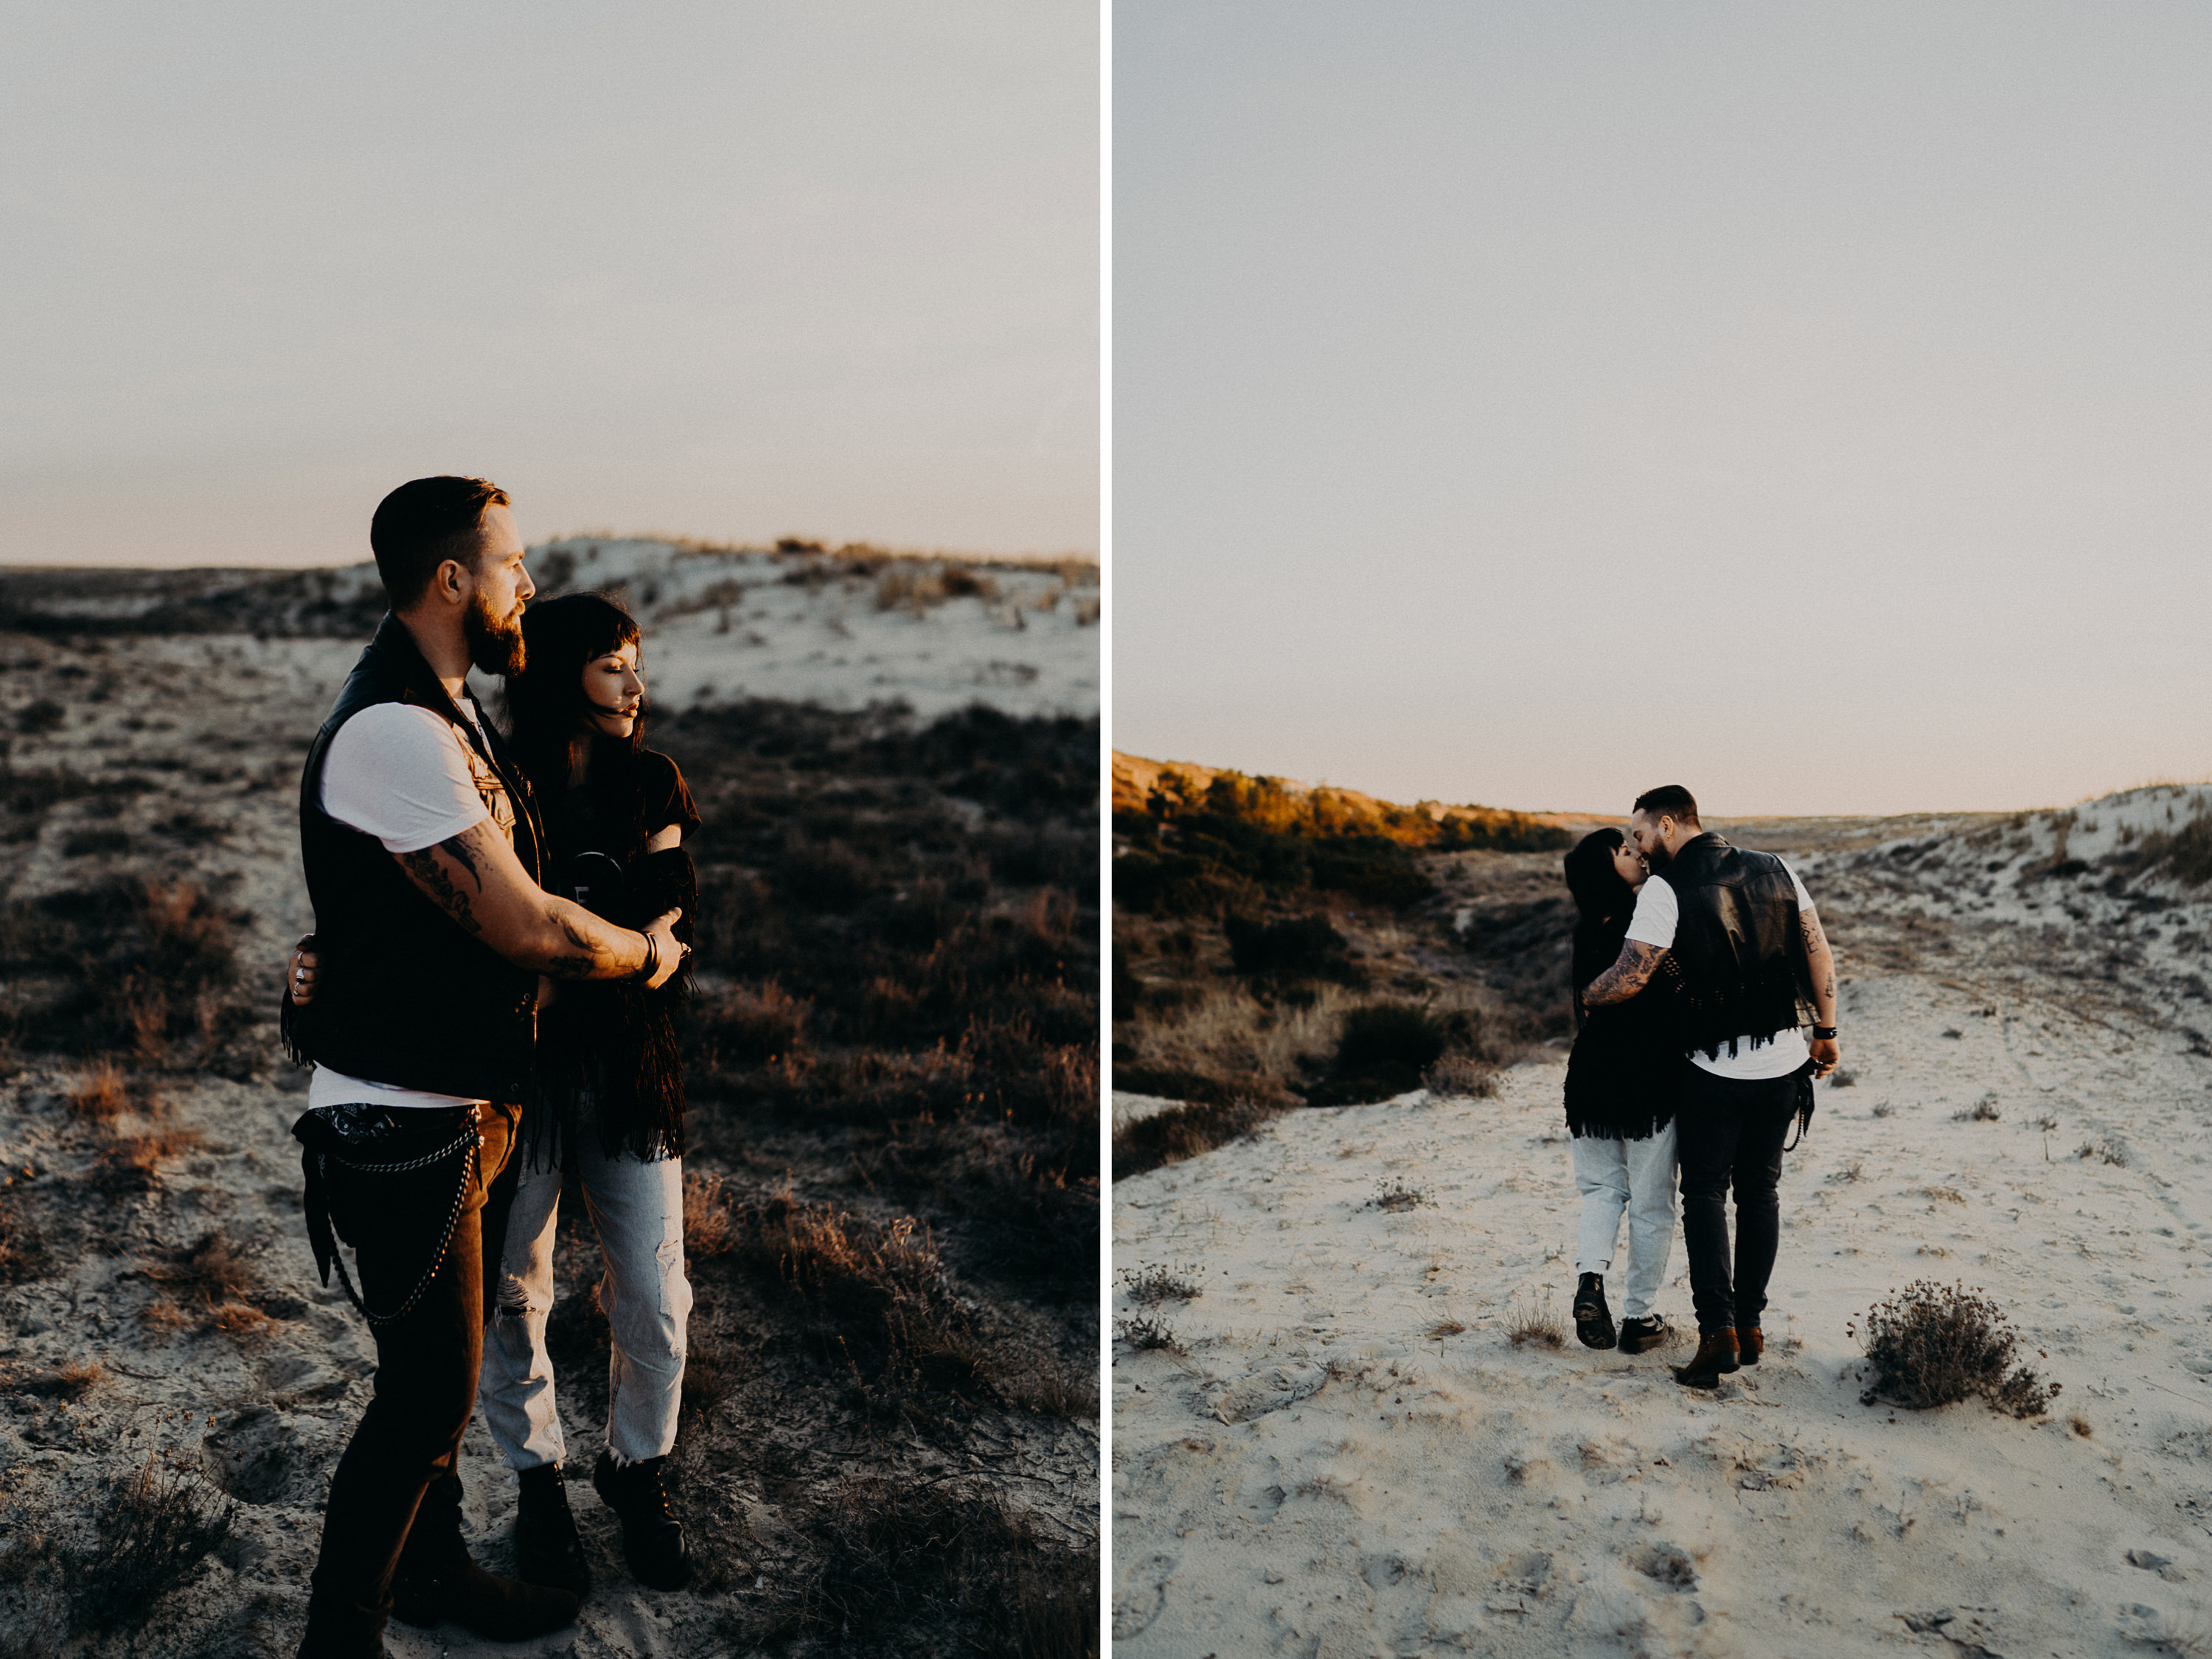 Photographe seance couple plage bassin